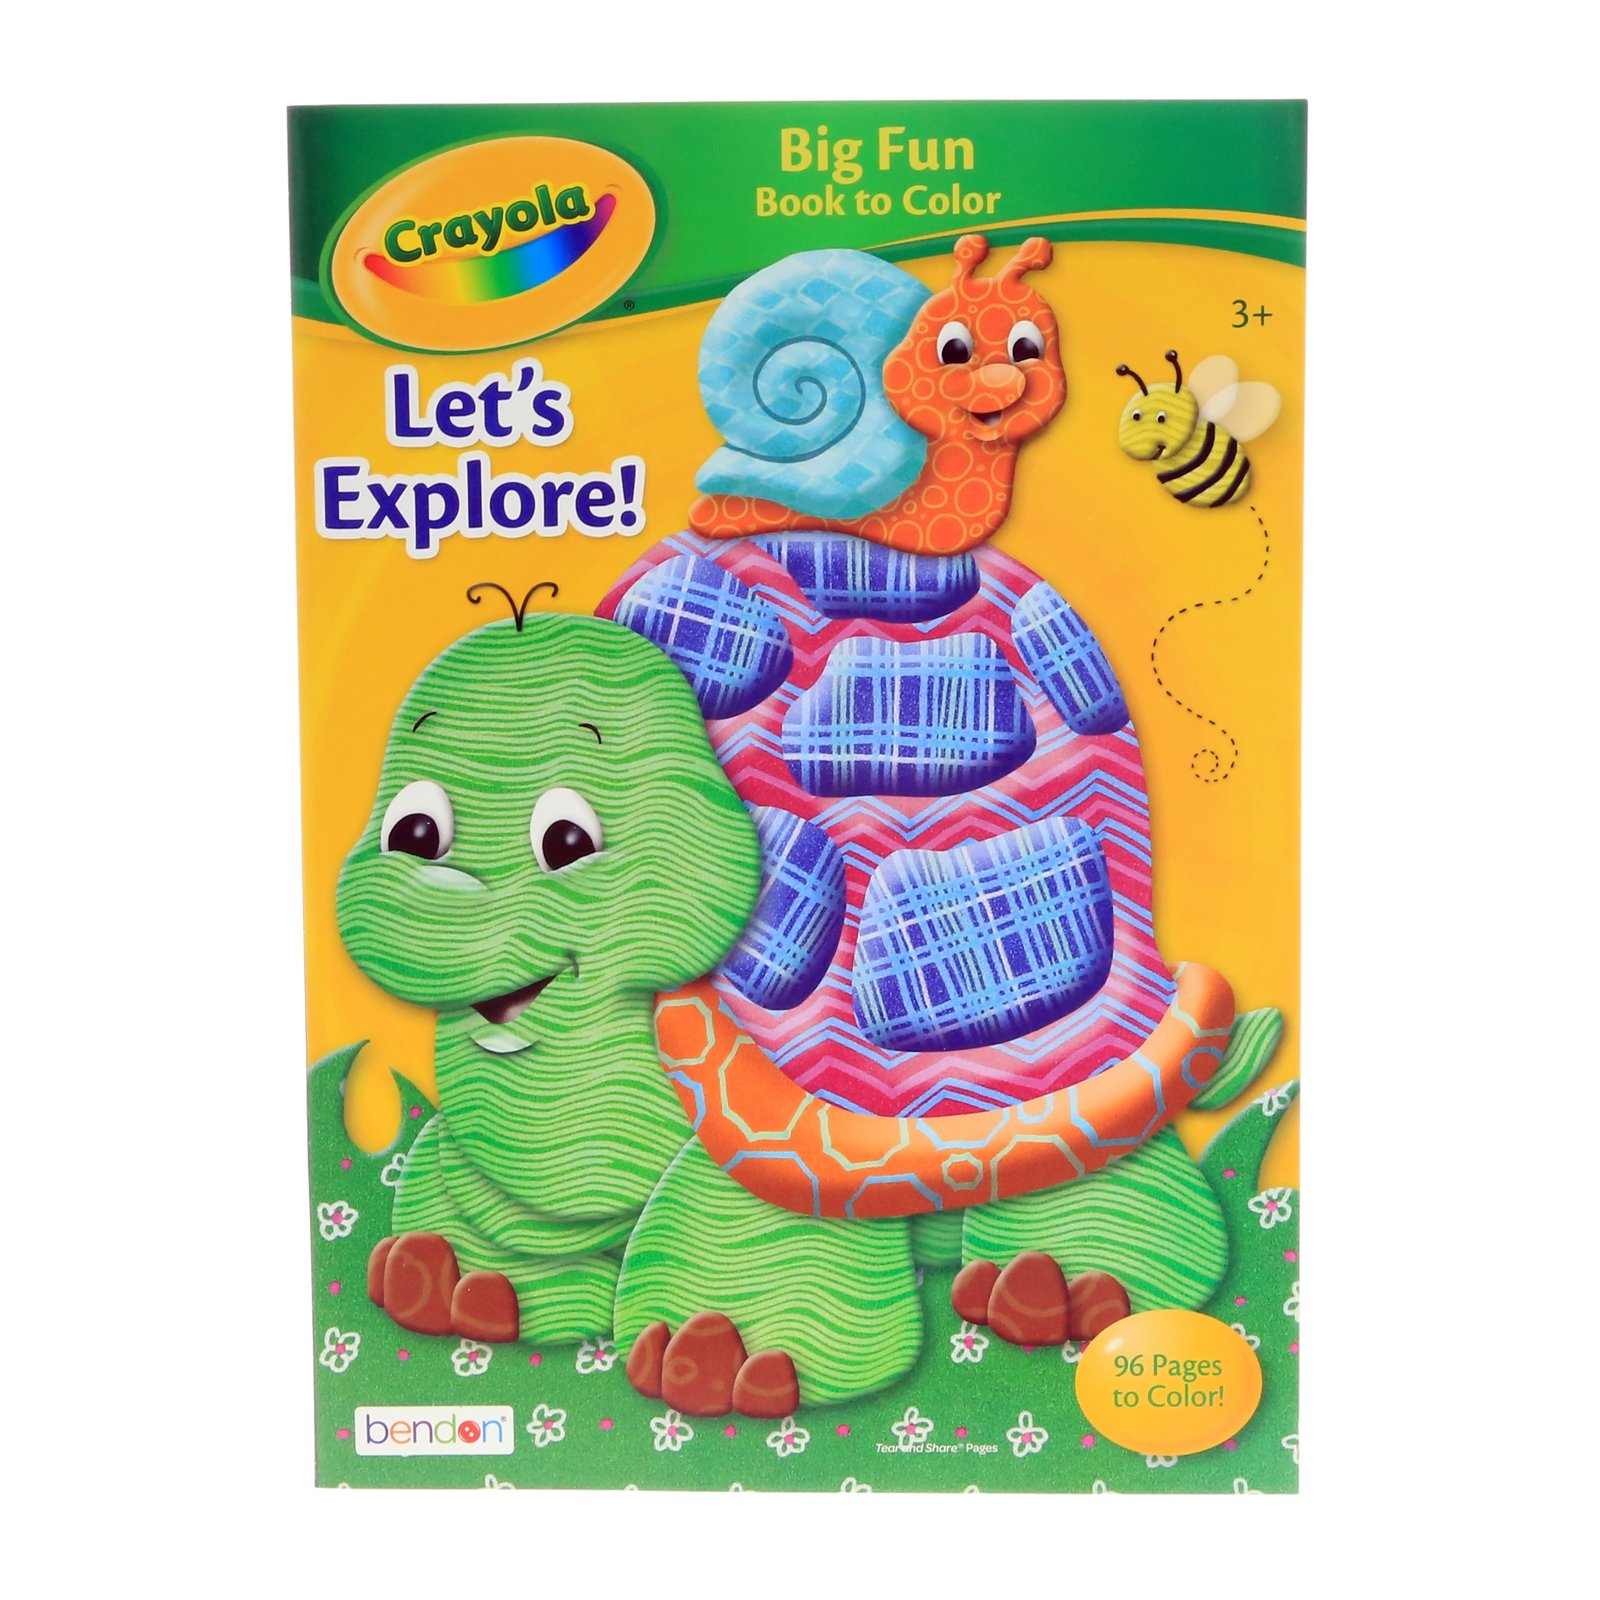 Crayola Kids Big Fun Coloring Book 96 Pages Childrens Art Supplies - Turtle